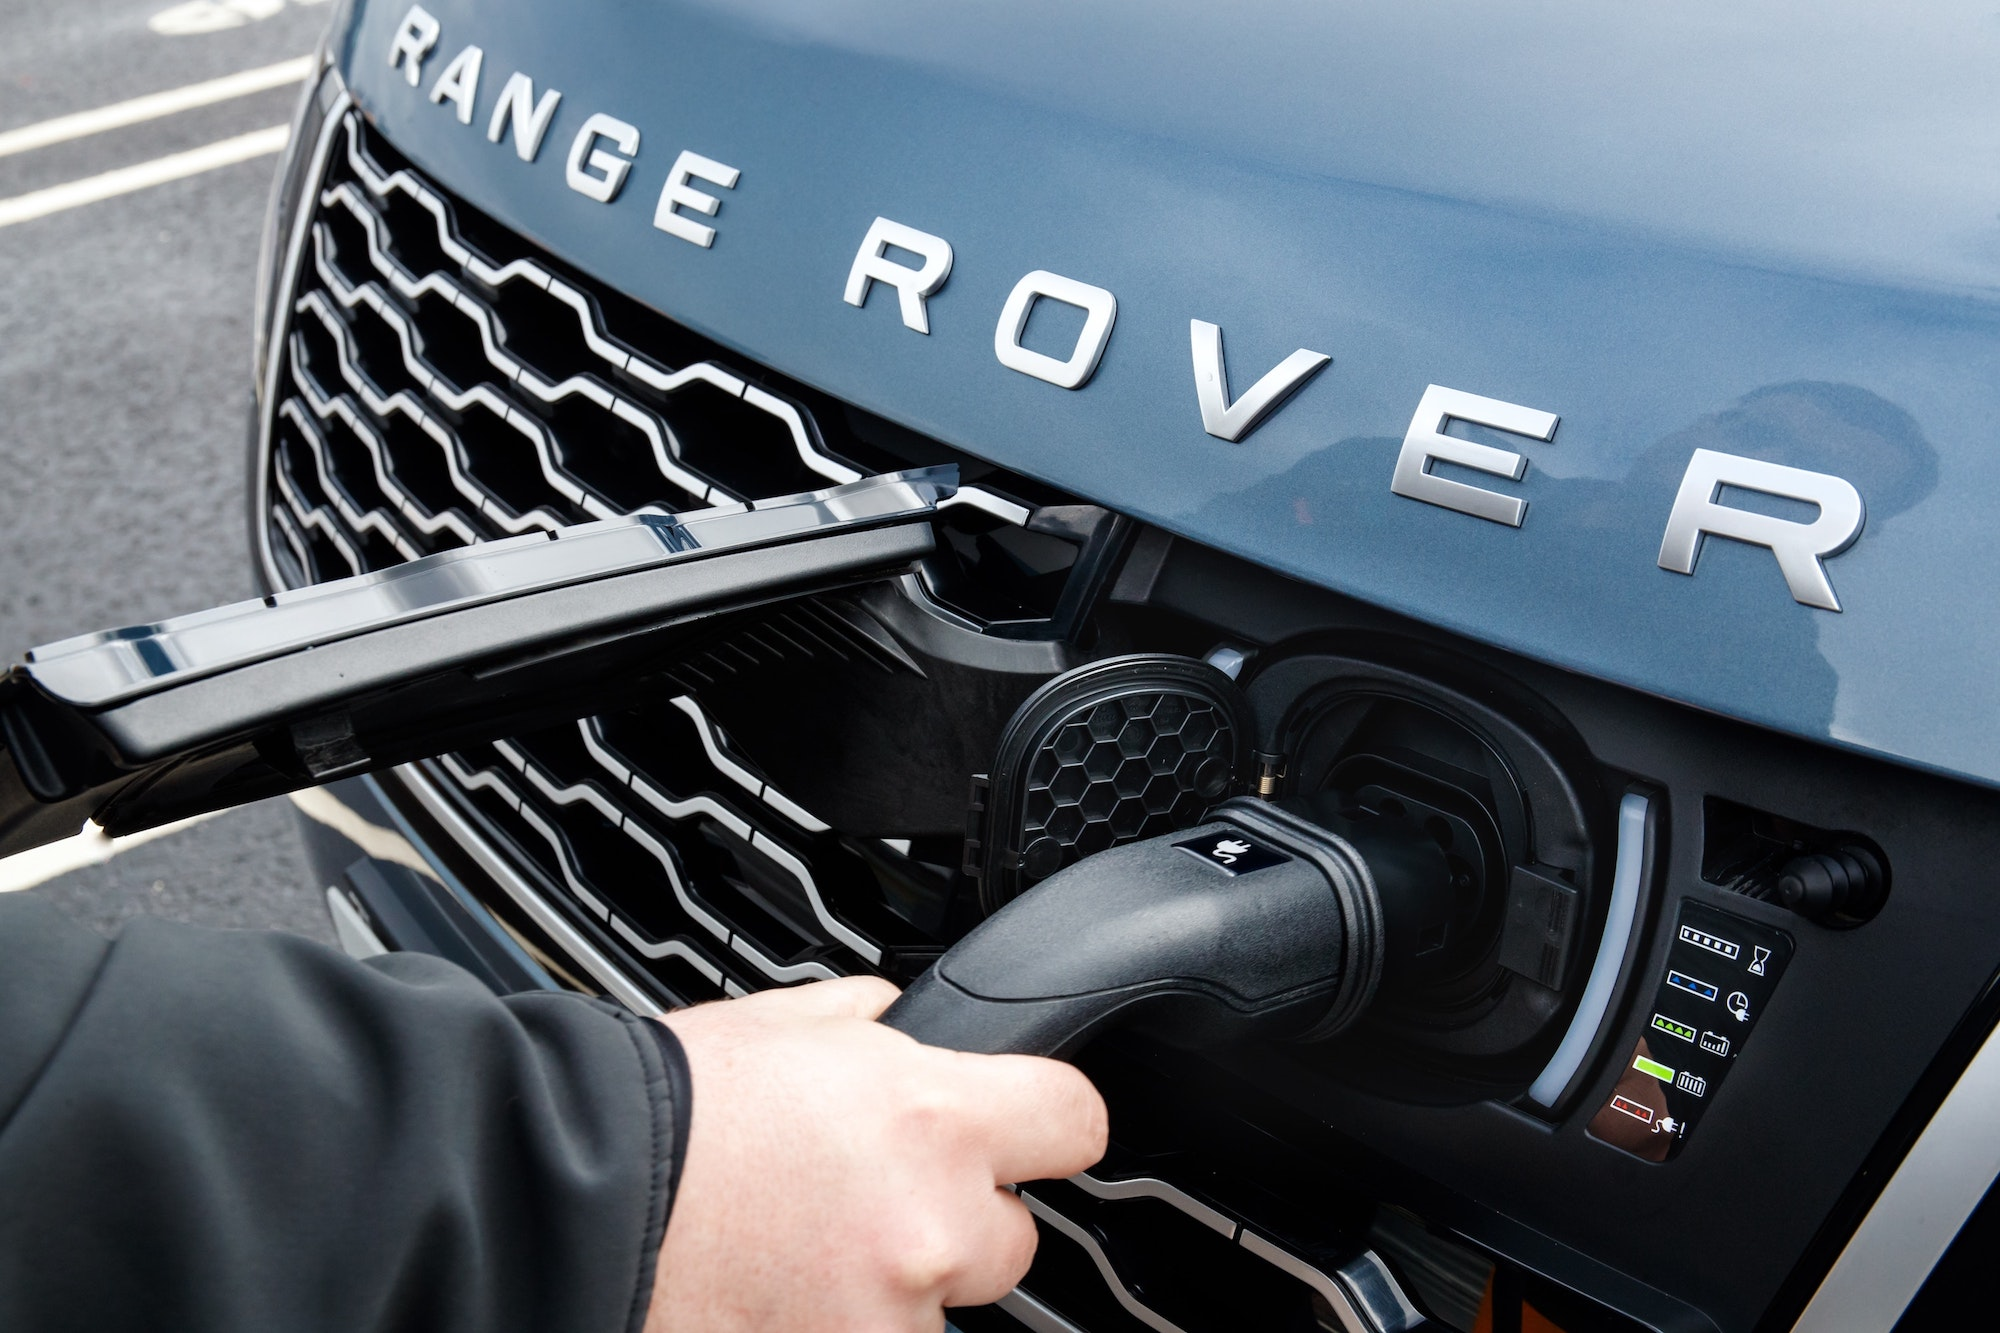 Convertible Range Rover Evoque SUV launched at Rs 69.53 lakh